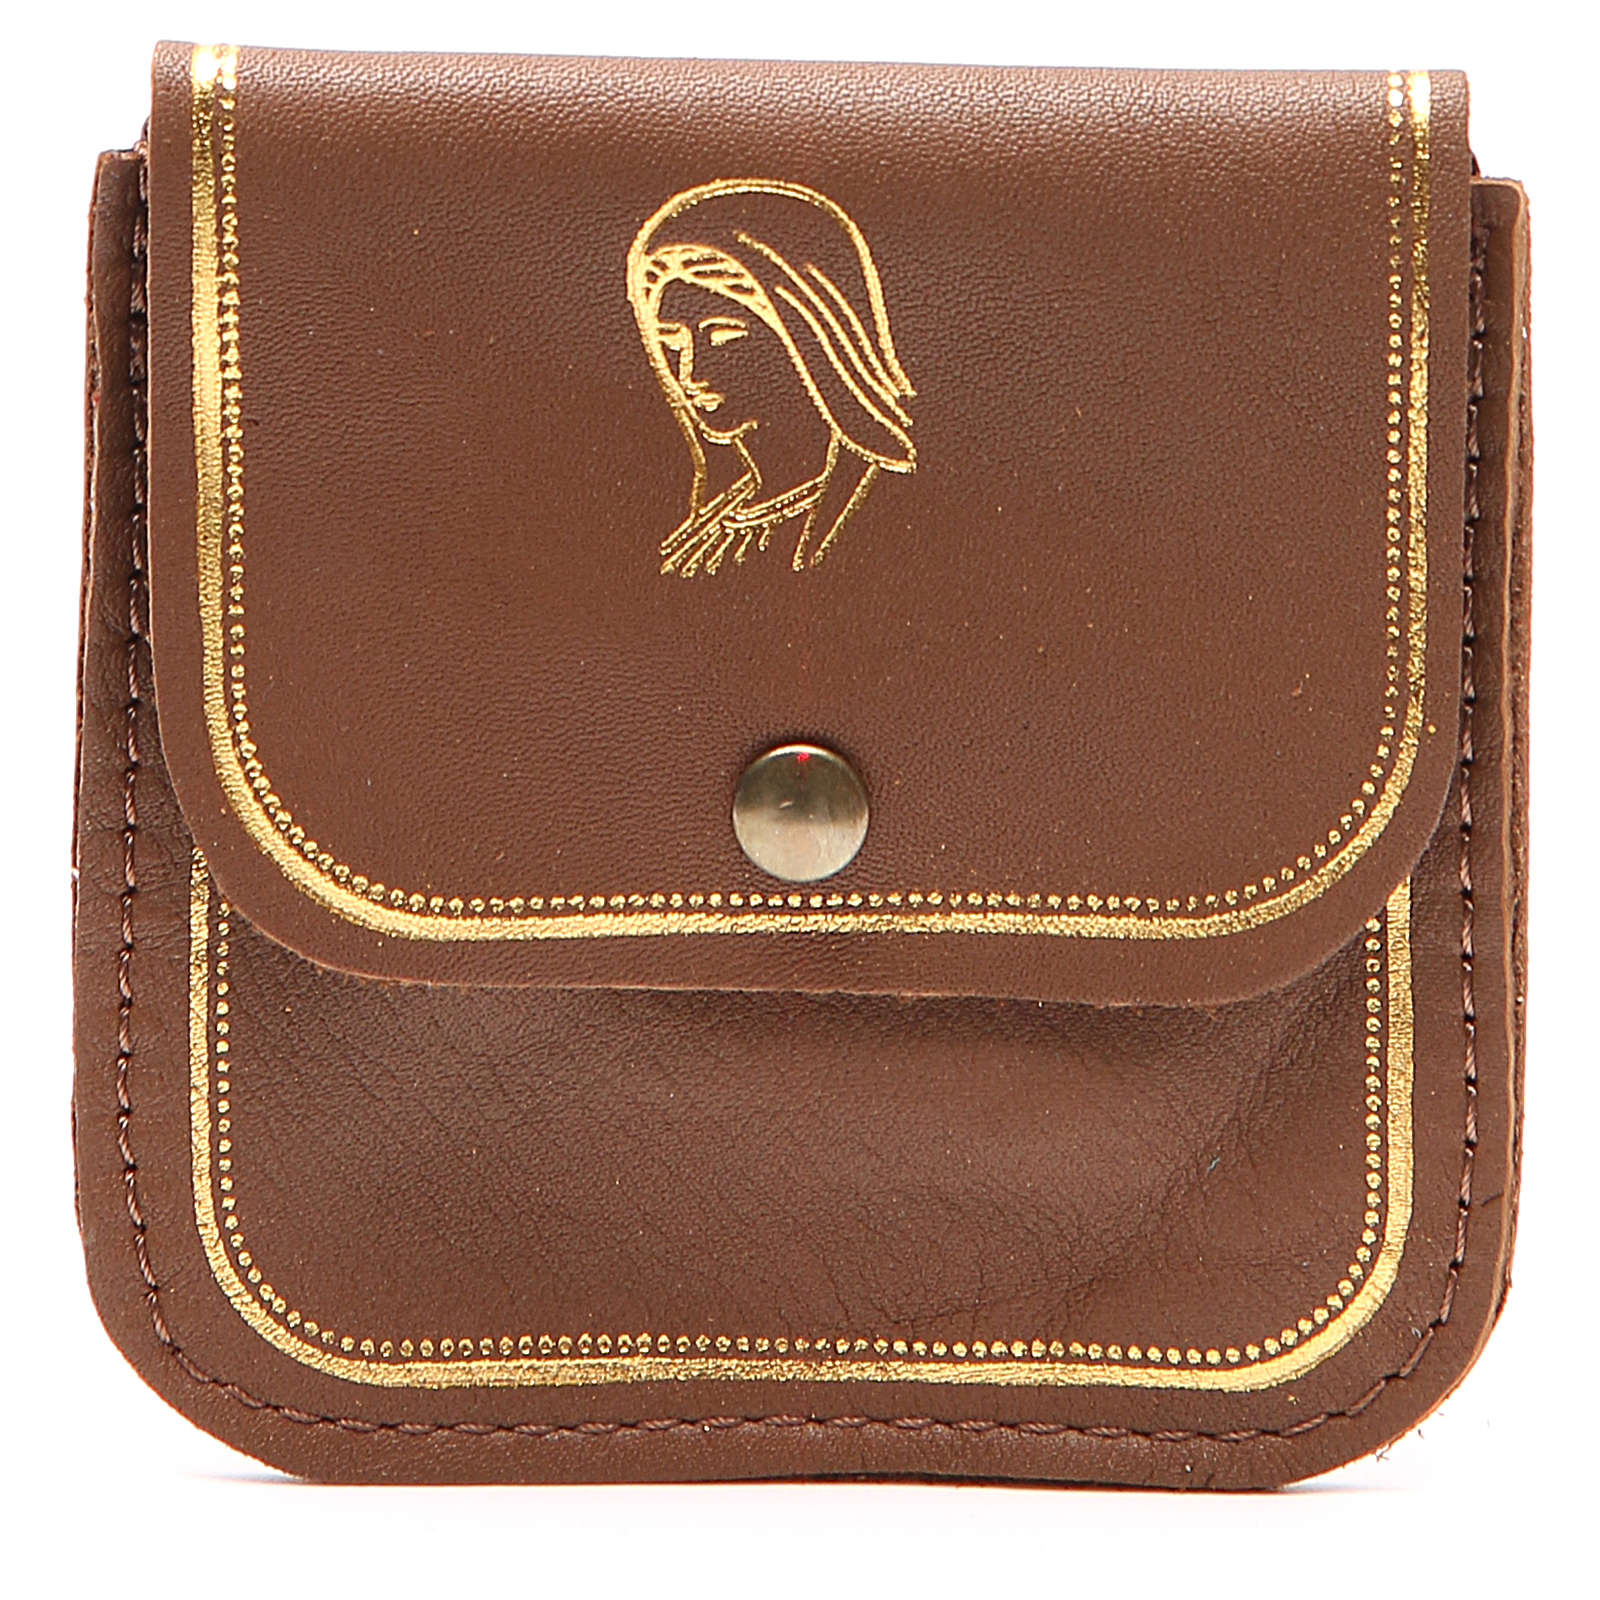 Rosary case in brown leather with image of Our Lady 4